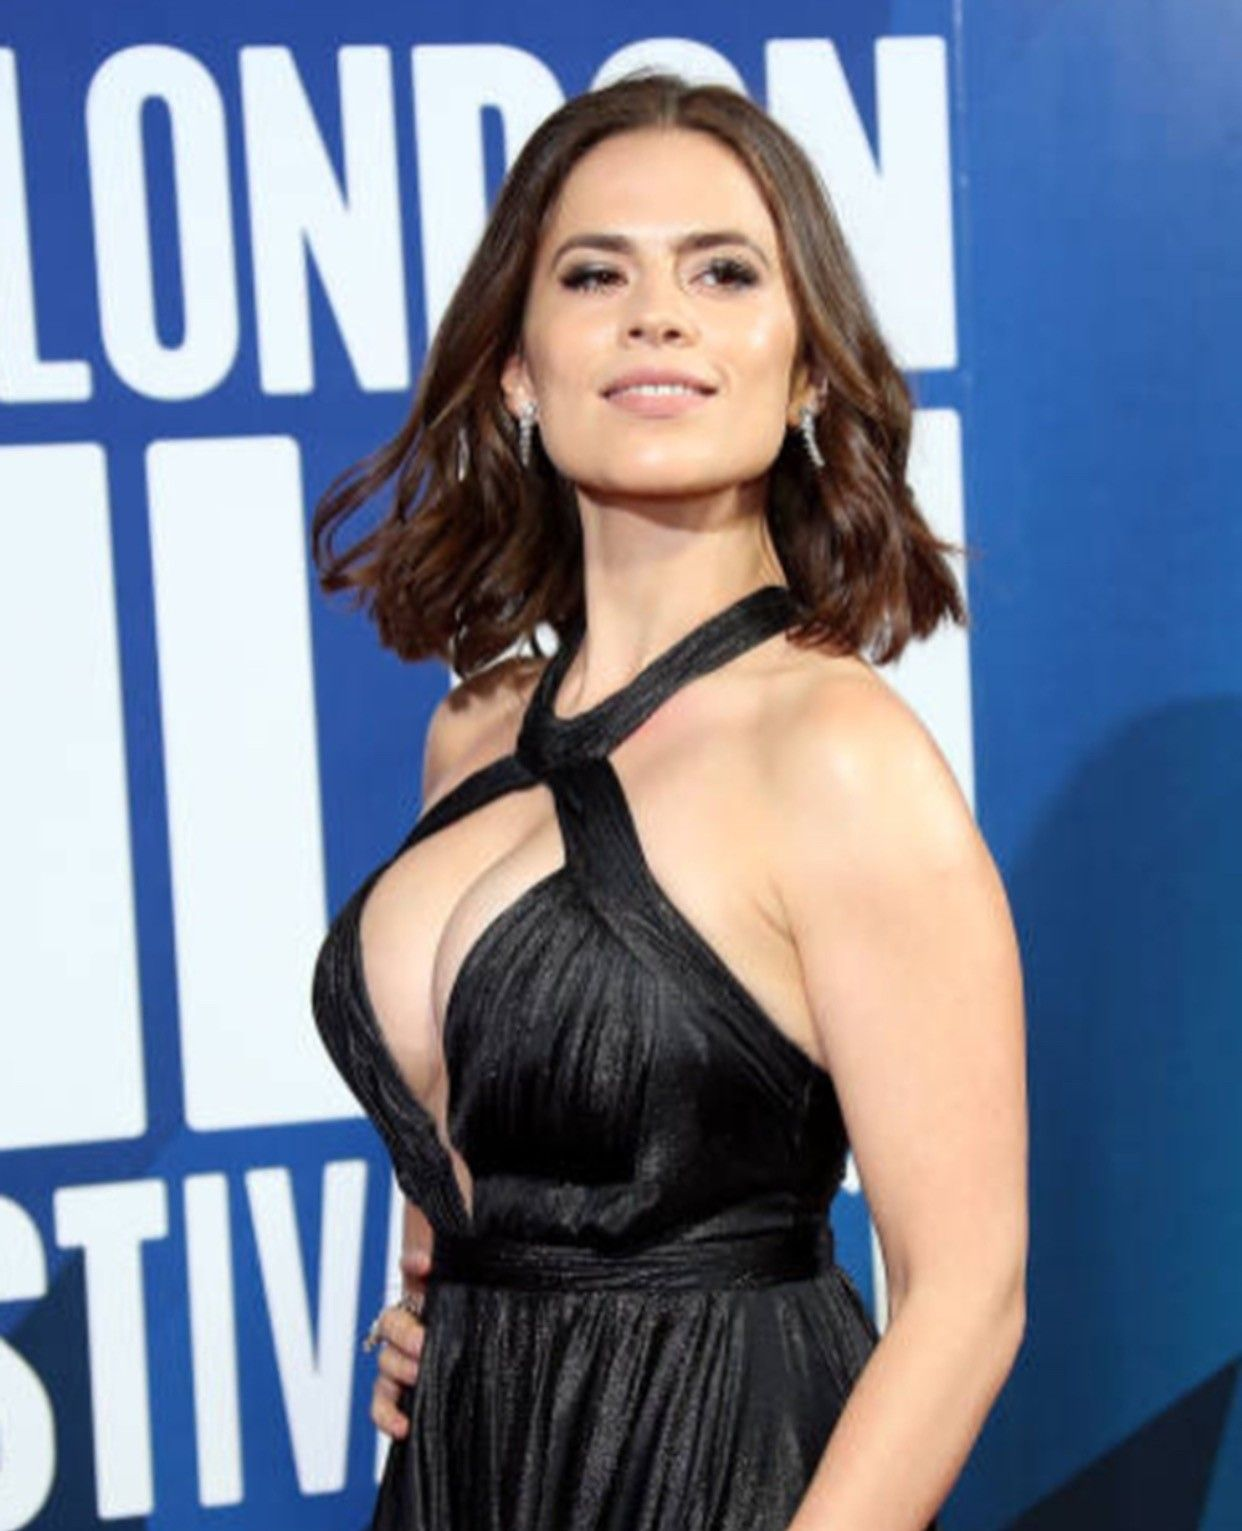 ICloud Hayley Atwell nudes (28 photos), Tits, Cleavage, Instagram, lingerie 2020